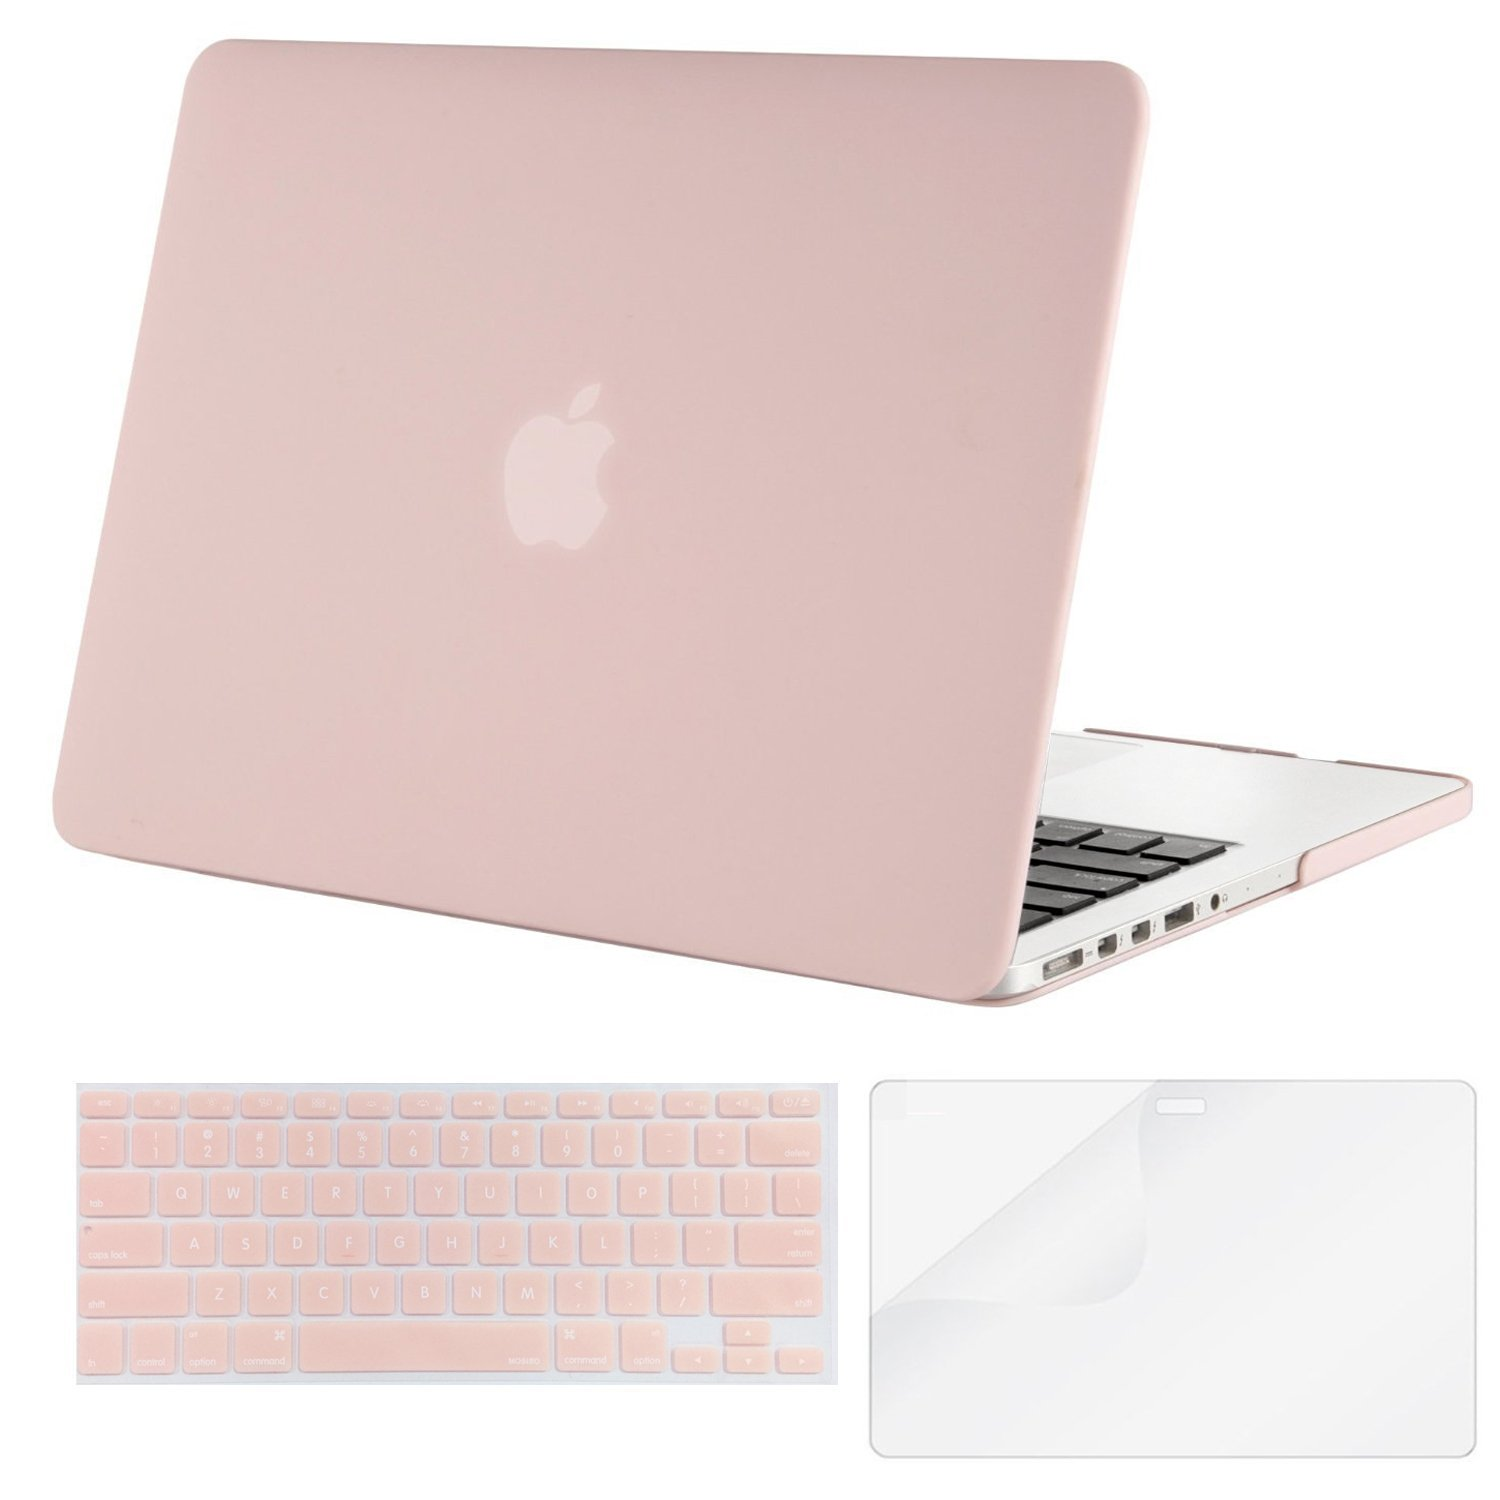 Mosiso Plastic Hard Case With Keyboard Cover With Screen